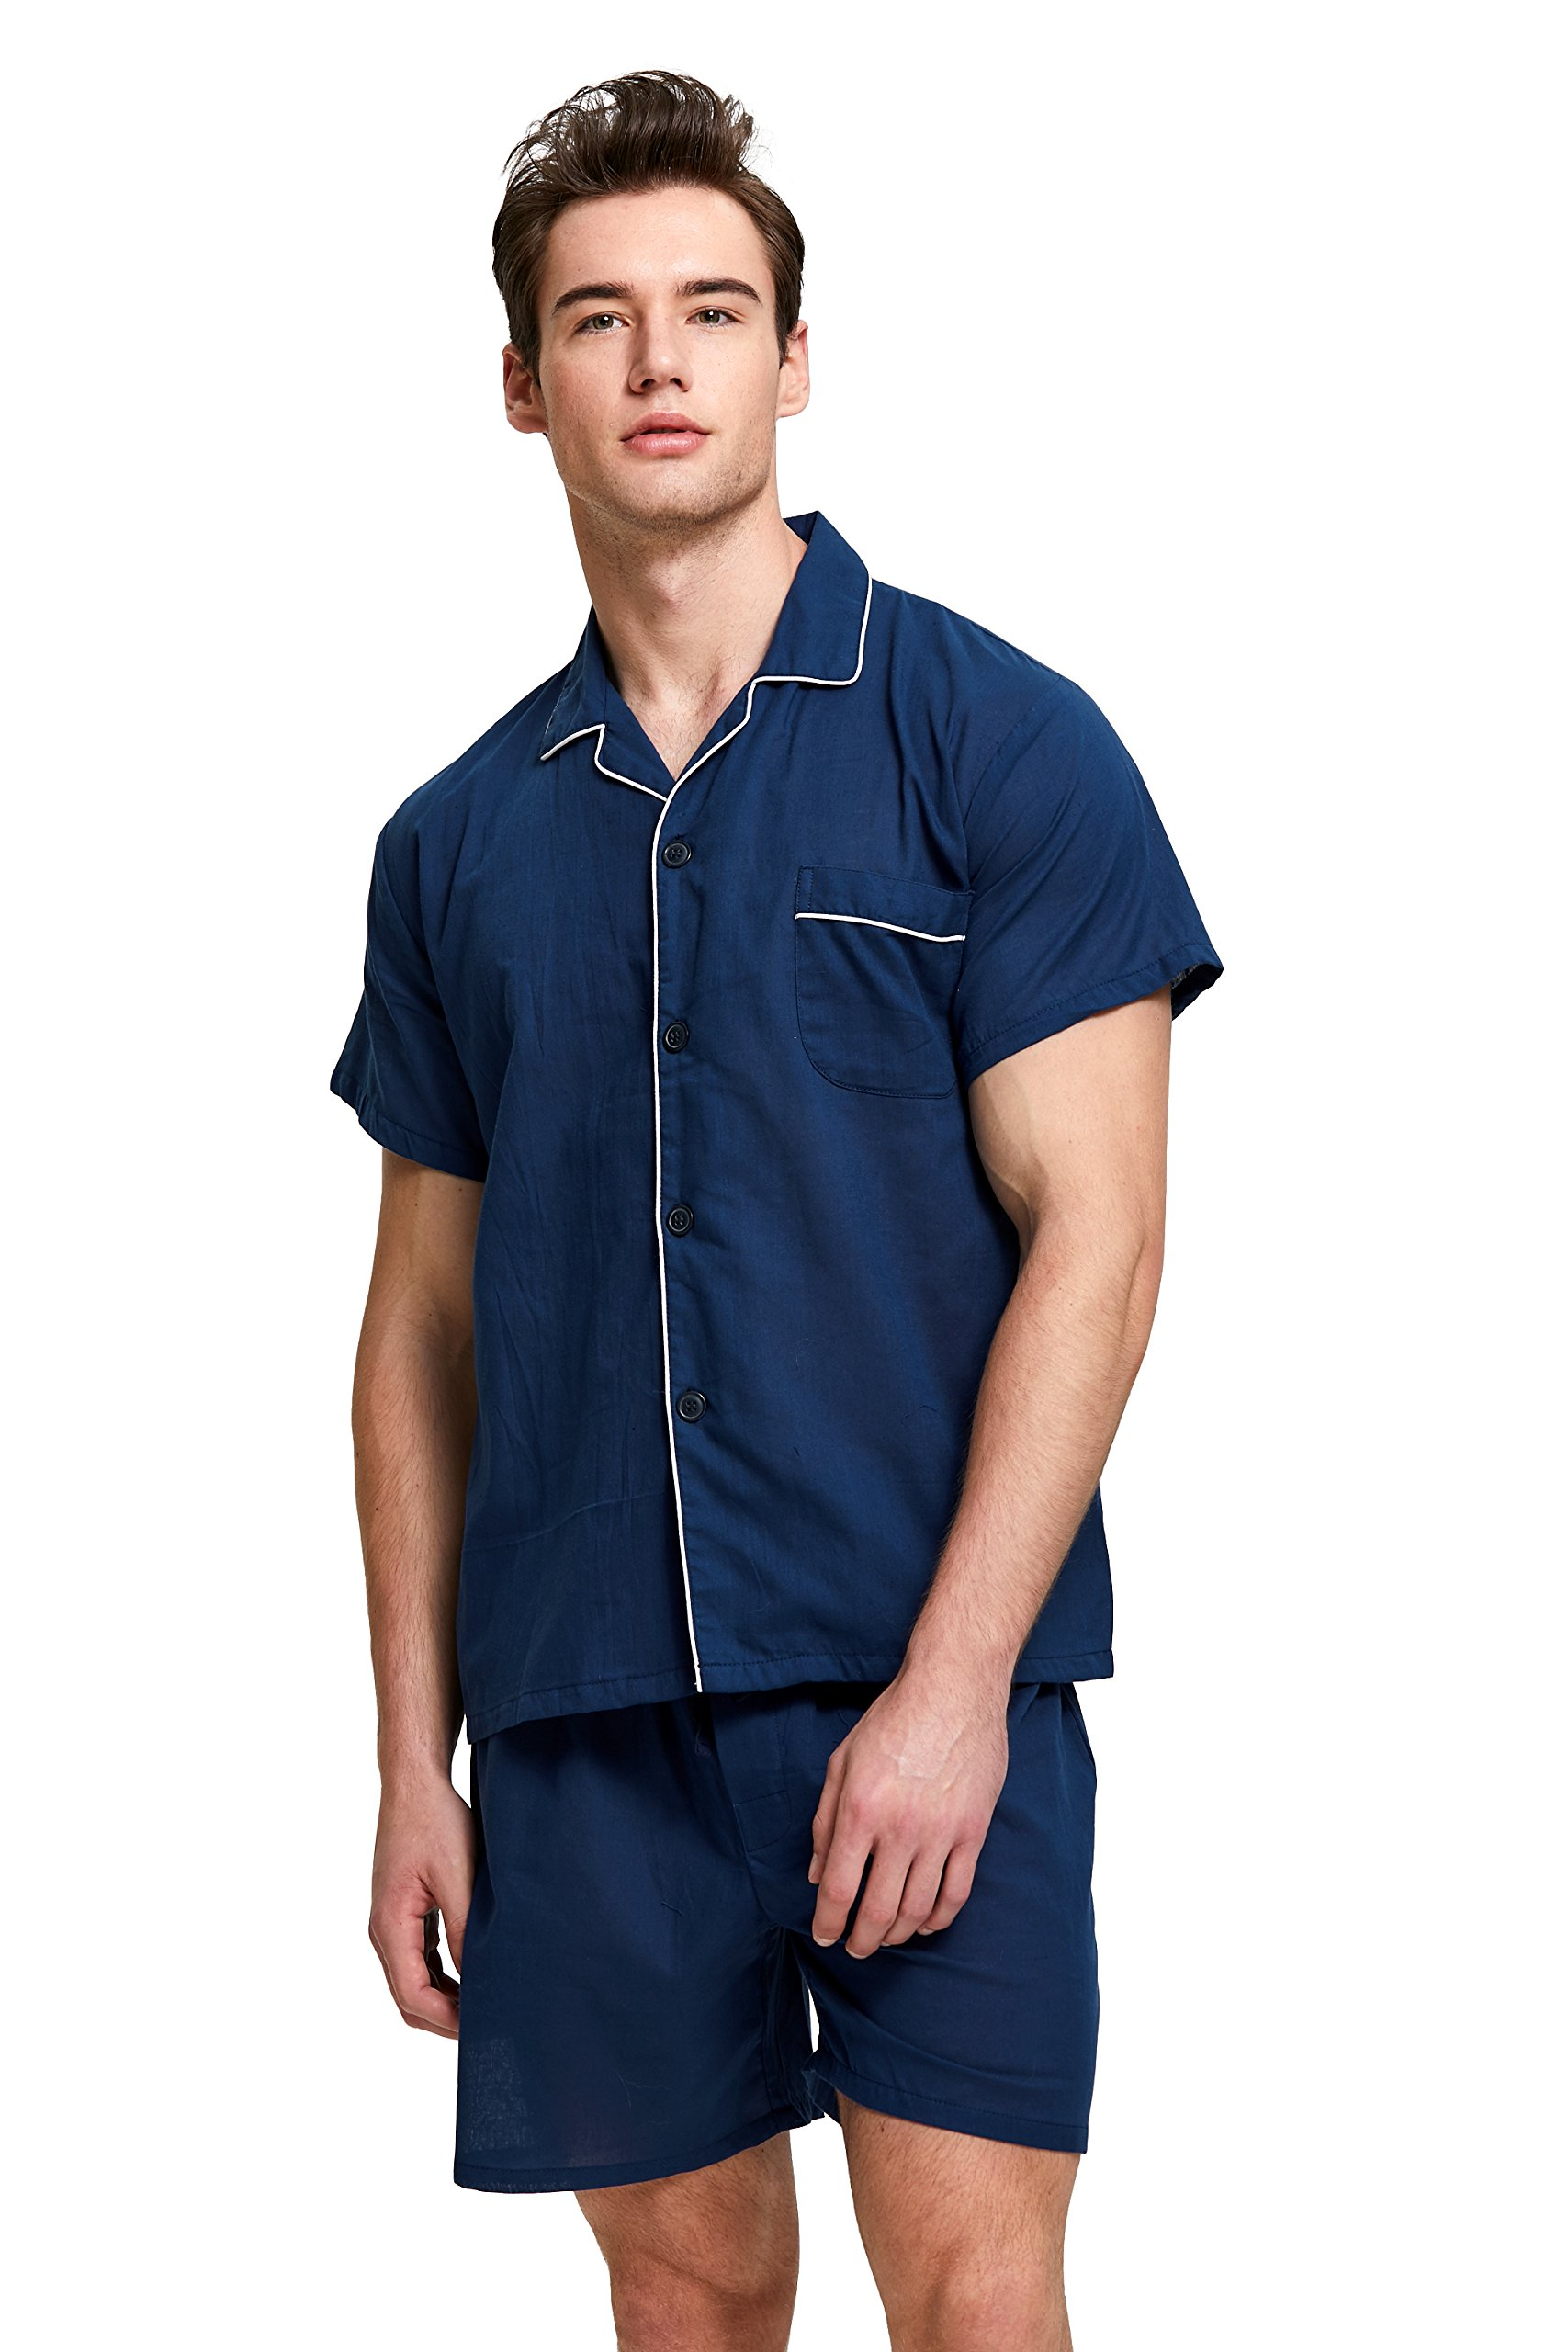 Men's Cotton Pajama Set, Short Sleeve Woven Sleepwear with Shorts, Button Down Nightwear (Navy Blue with White Piping, Large)